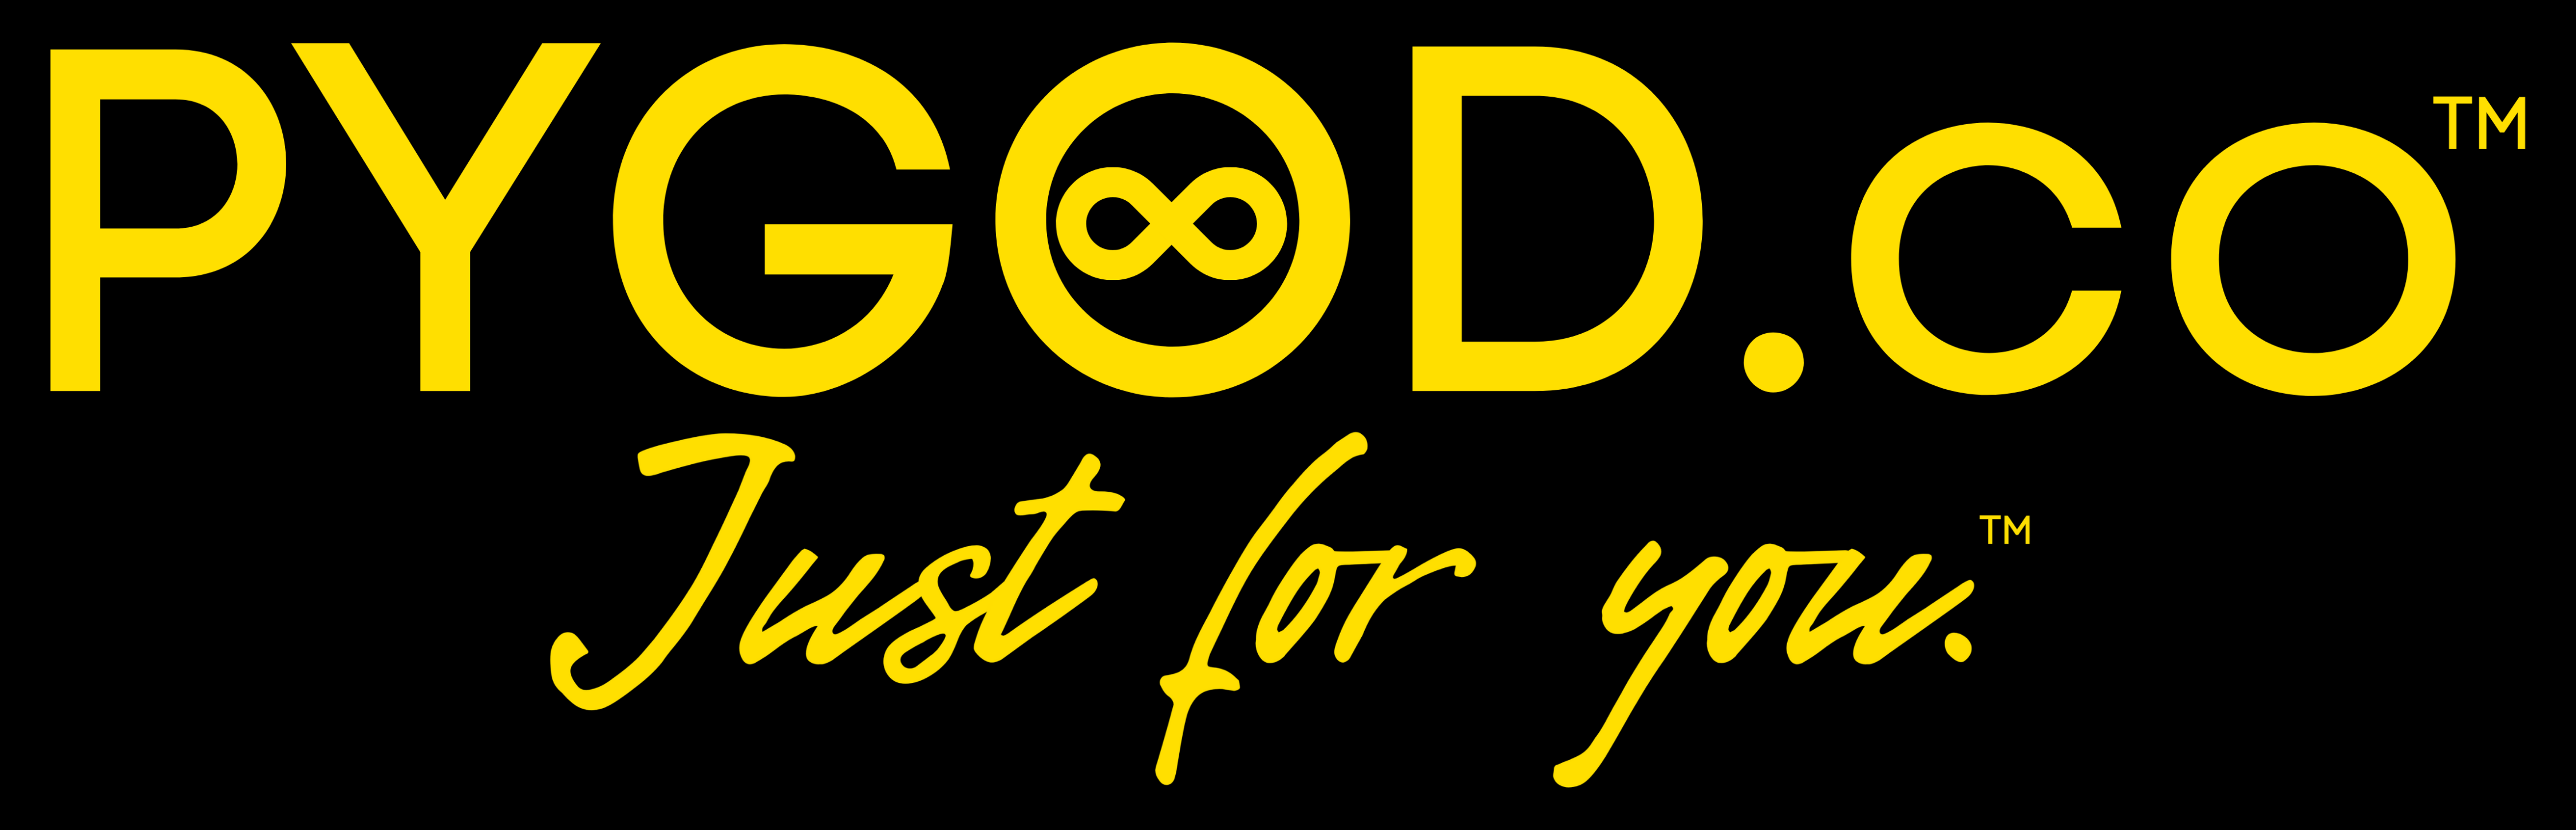 PYGOD.co™ Just for you.™